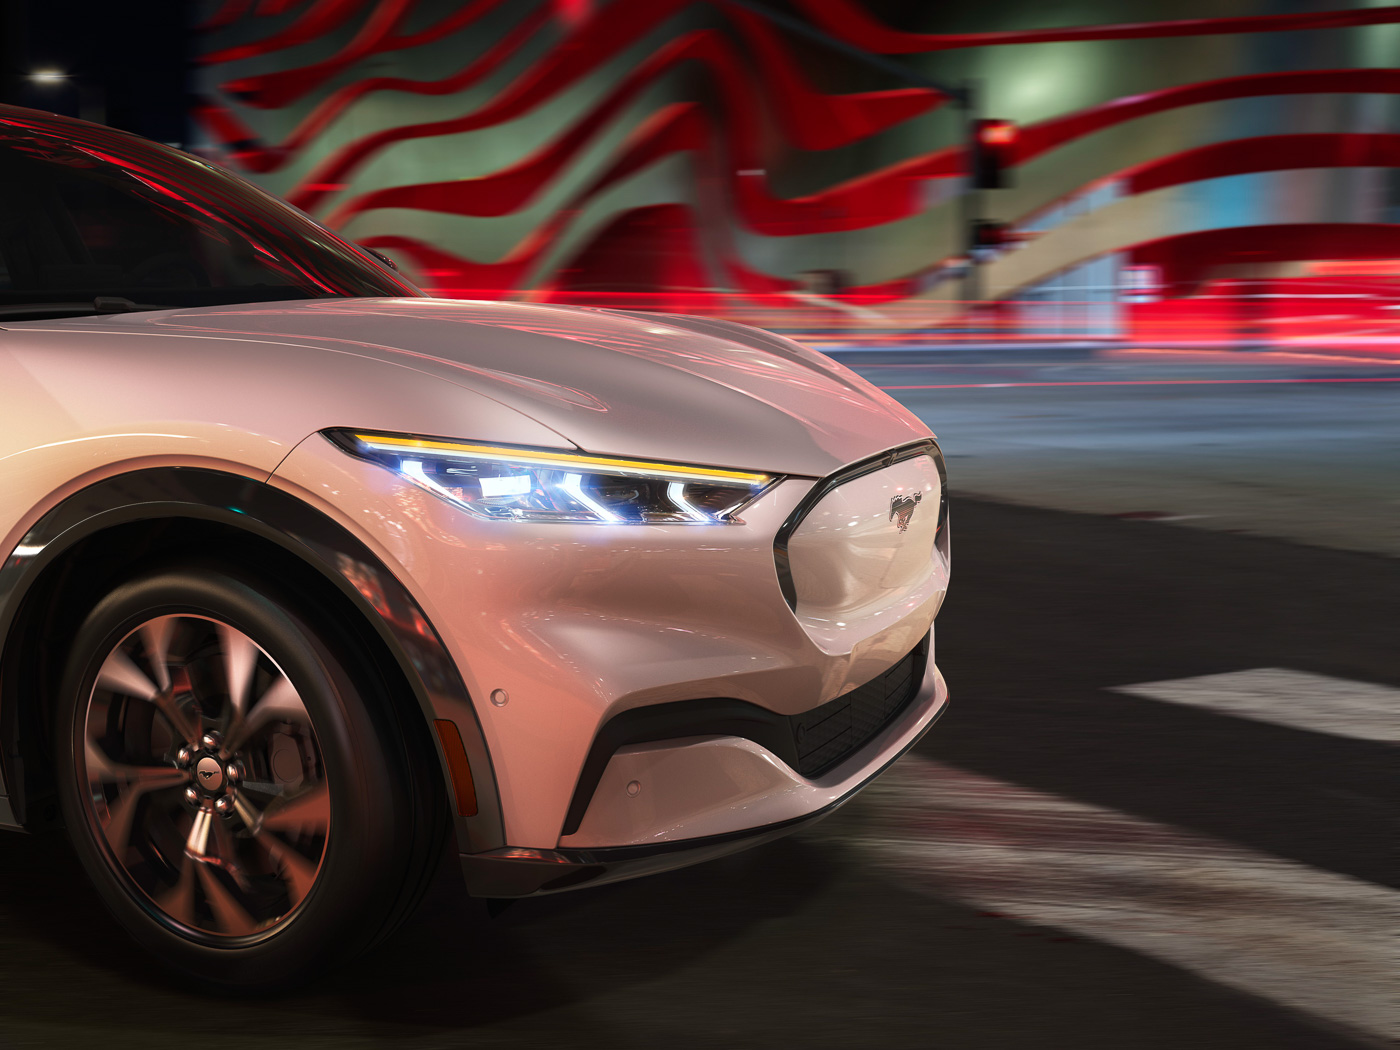 2021-Mach-E-Mustang-Ford-Electric-SUV--3.jpg